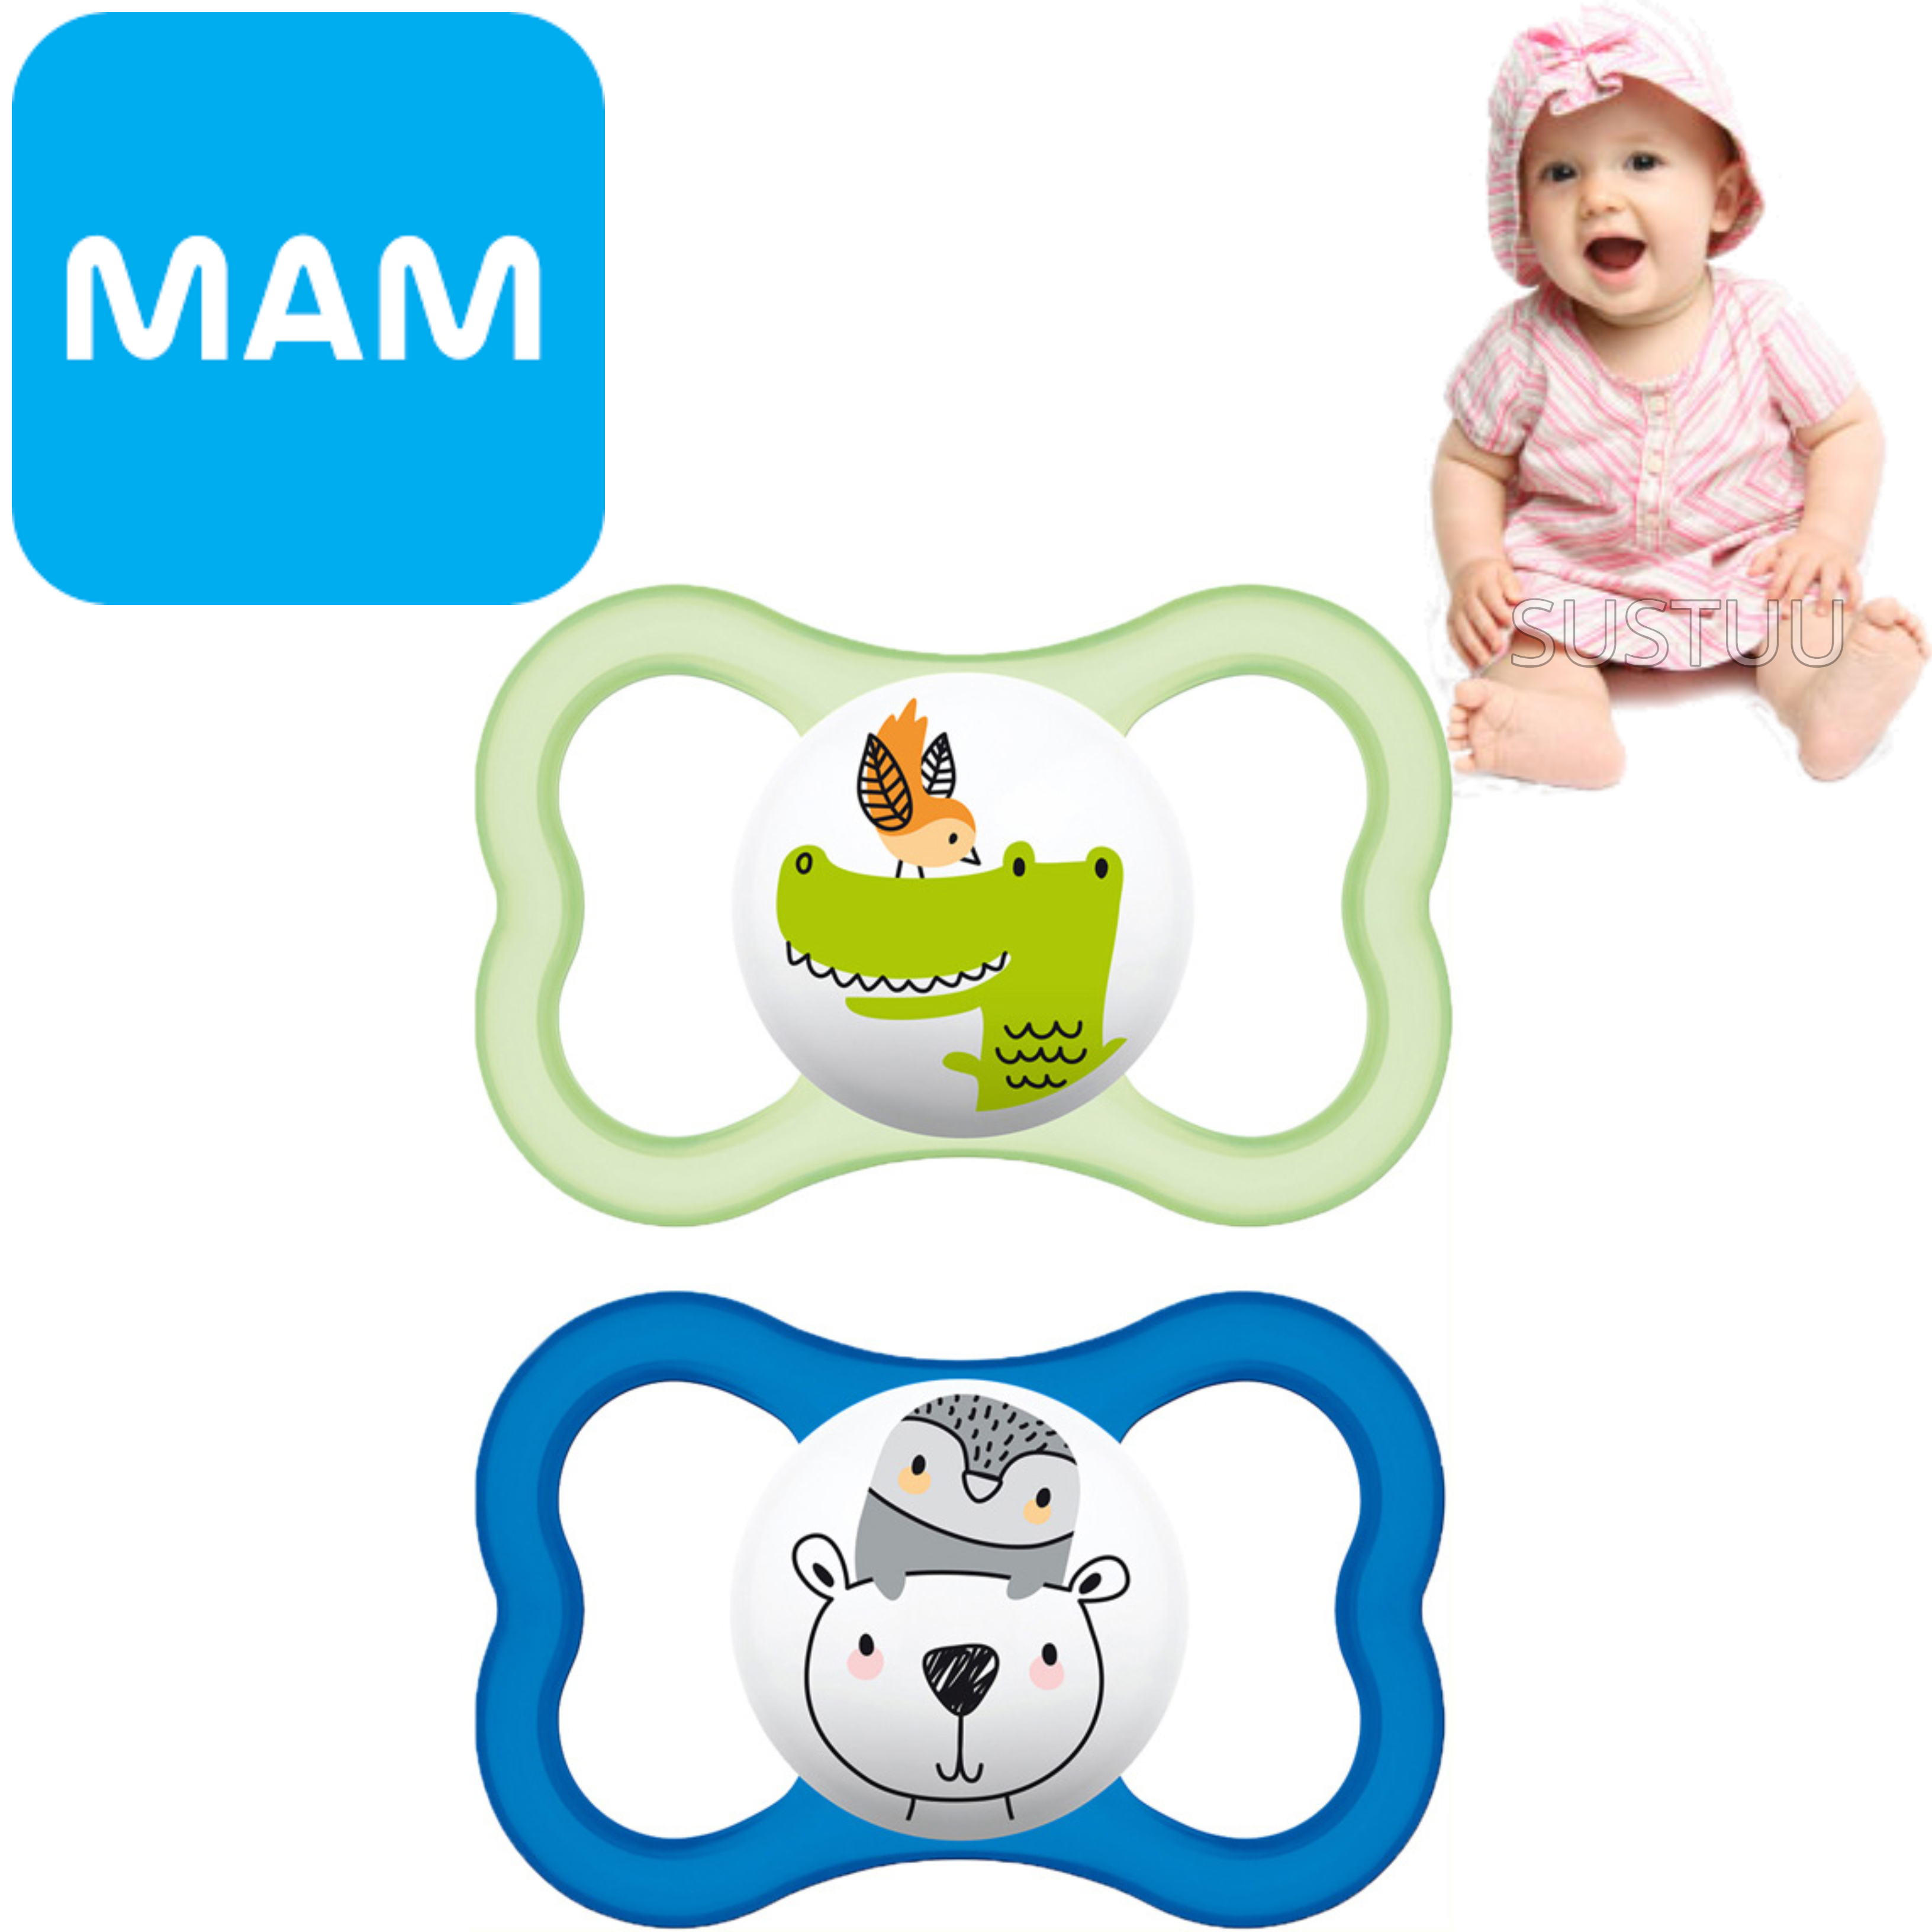 MAM Air Soother | Skin Friendly Dummy | Use Box As Steriliser & Travel Case | +6m | Blue